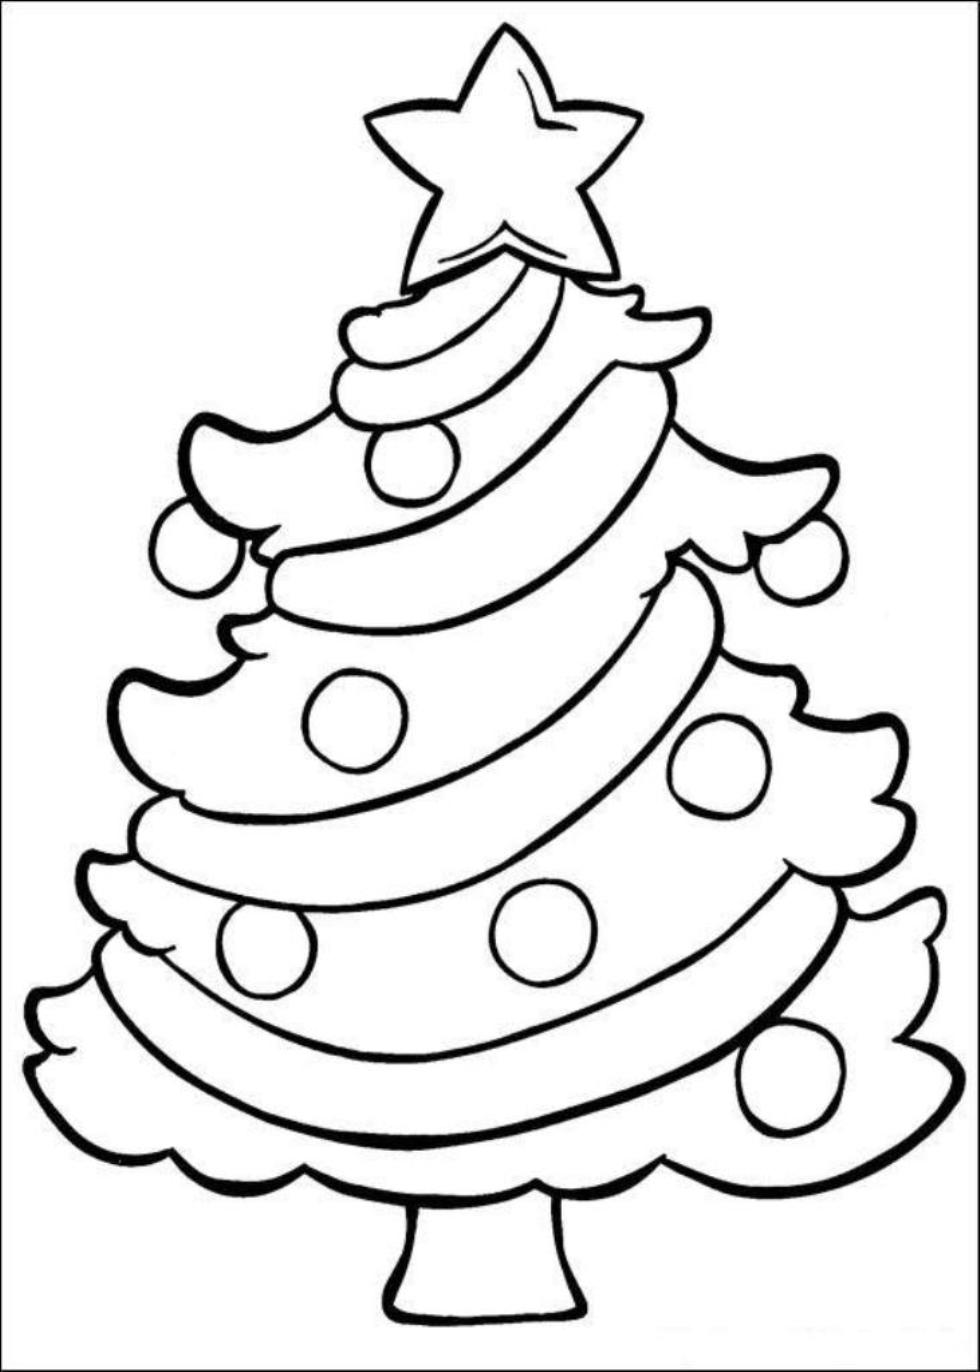 Free Coloring Sheet Christmas Tree Coloring Page